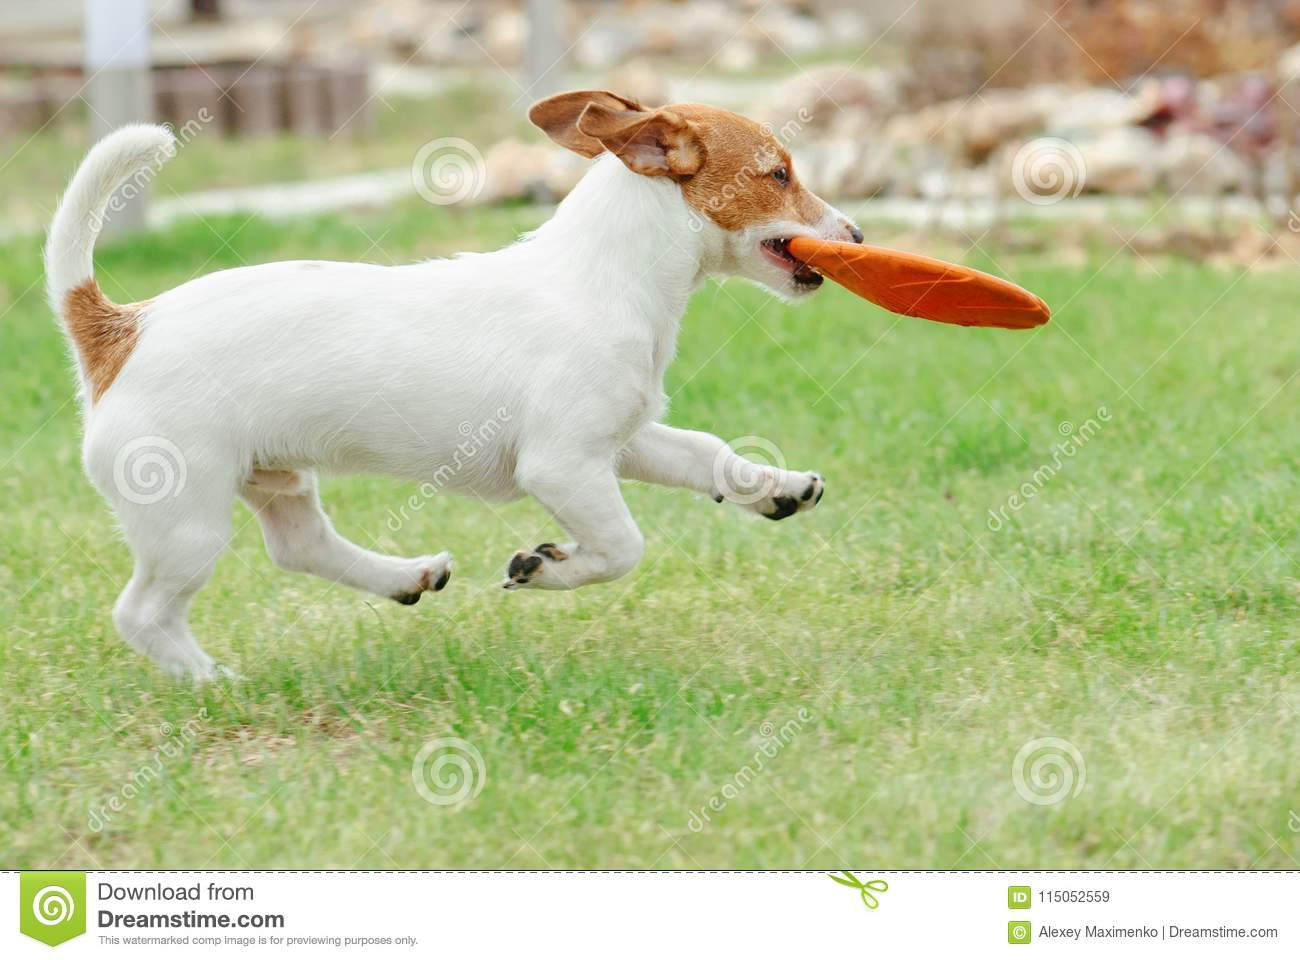 Cute Young Puppy Of Jack Russell Terrier Dog Running With Flying